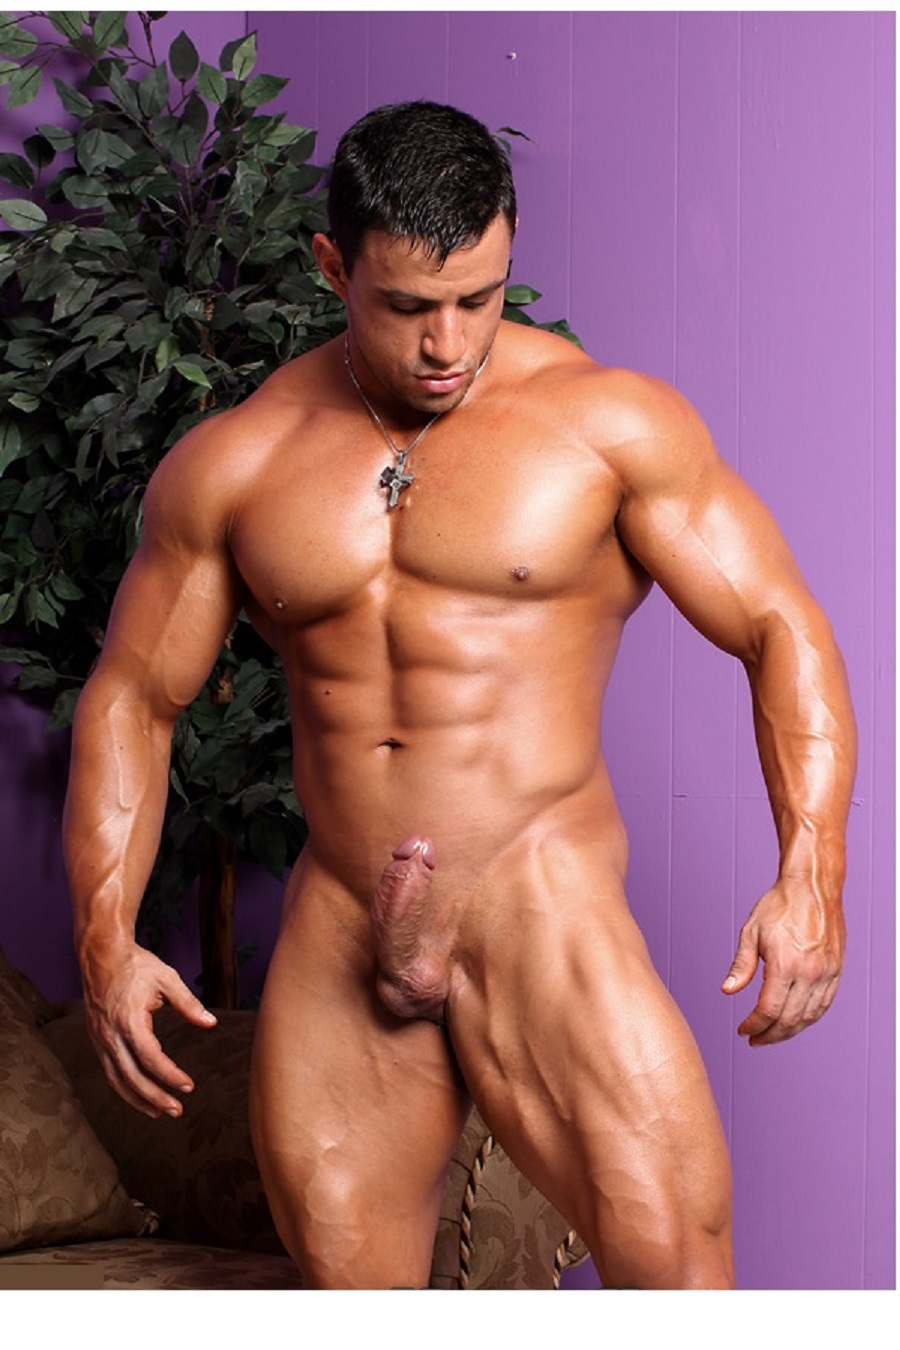 Body builder gay hot male muscle naked-7859